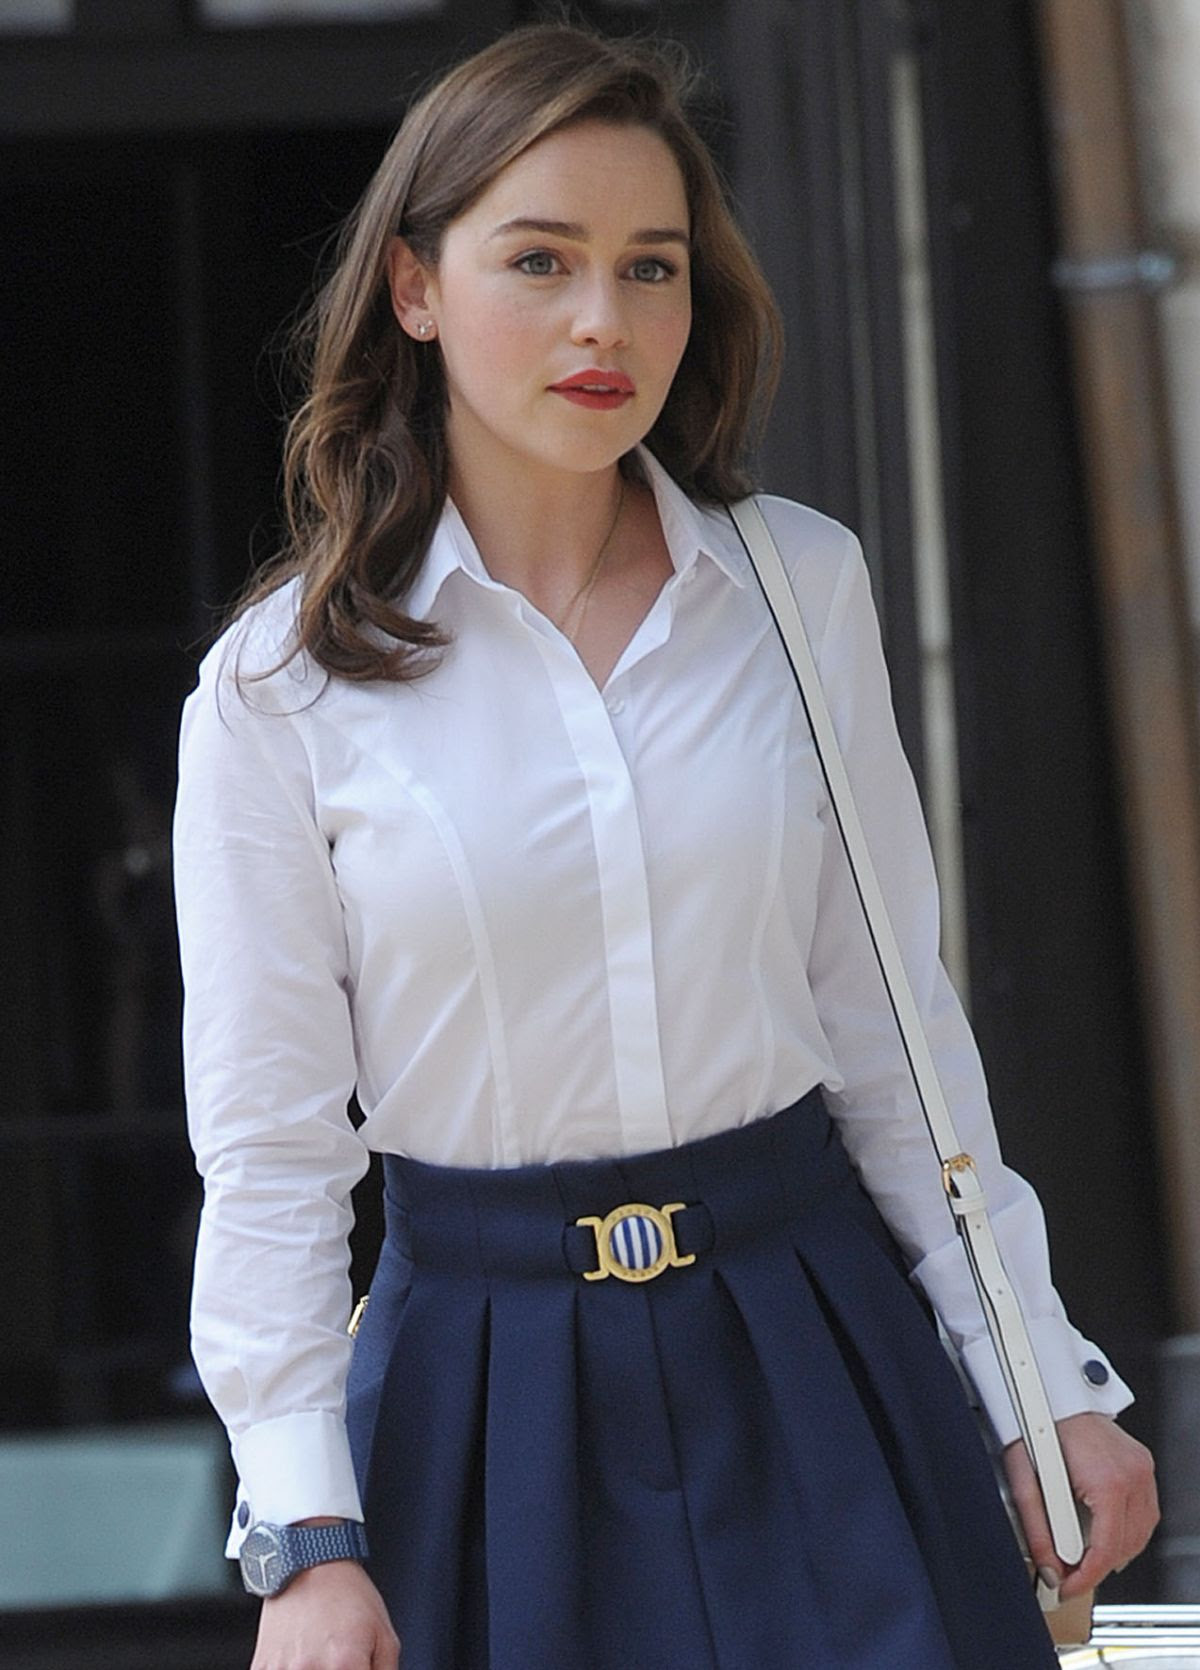 EMILIA CLARKE in Bikini on the Set of Me Before You in Paris 06/19/2015